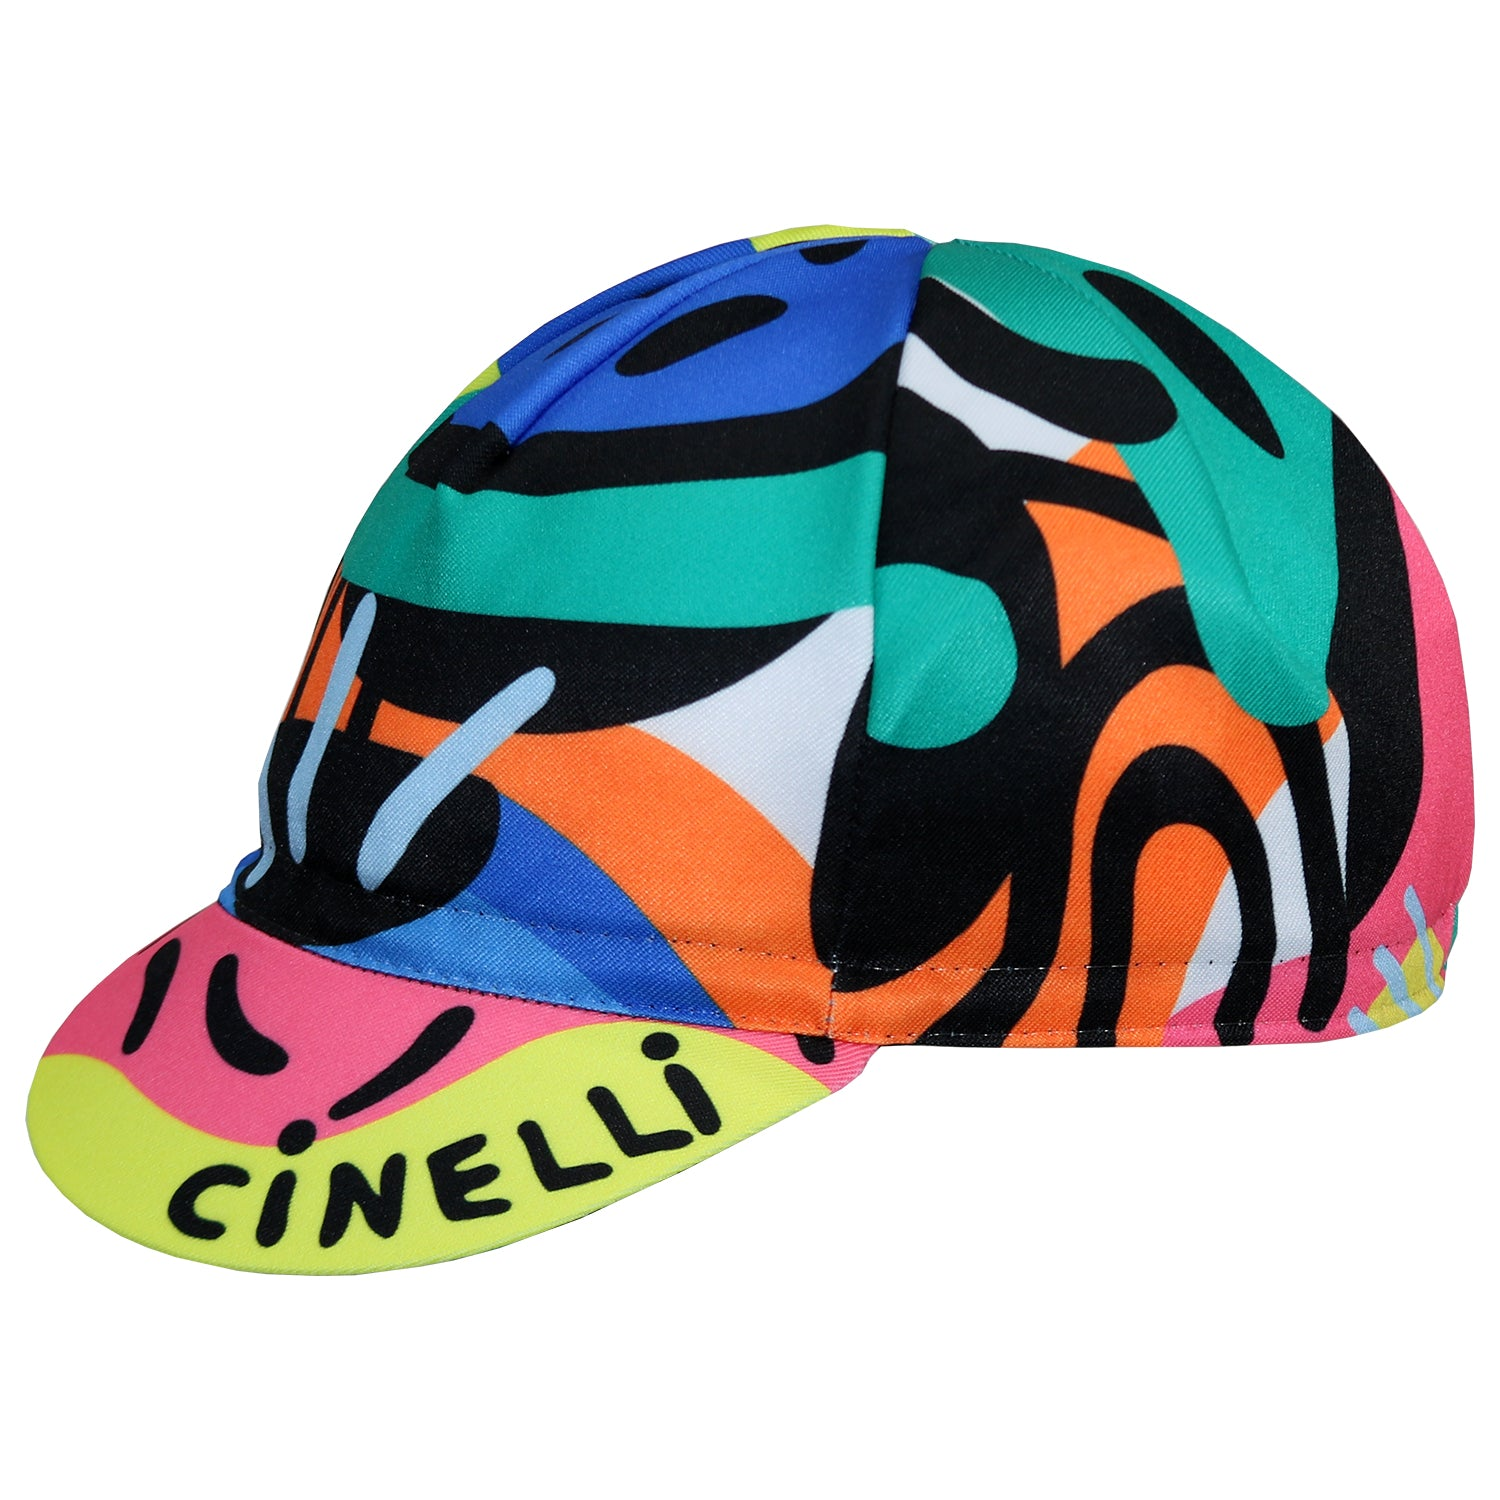 Cinelli Tarsila Schubert Deep Love Dive Cycling Cap